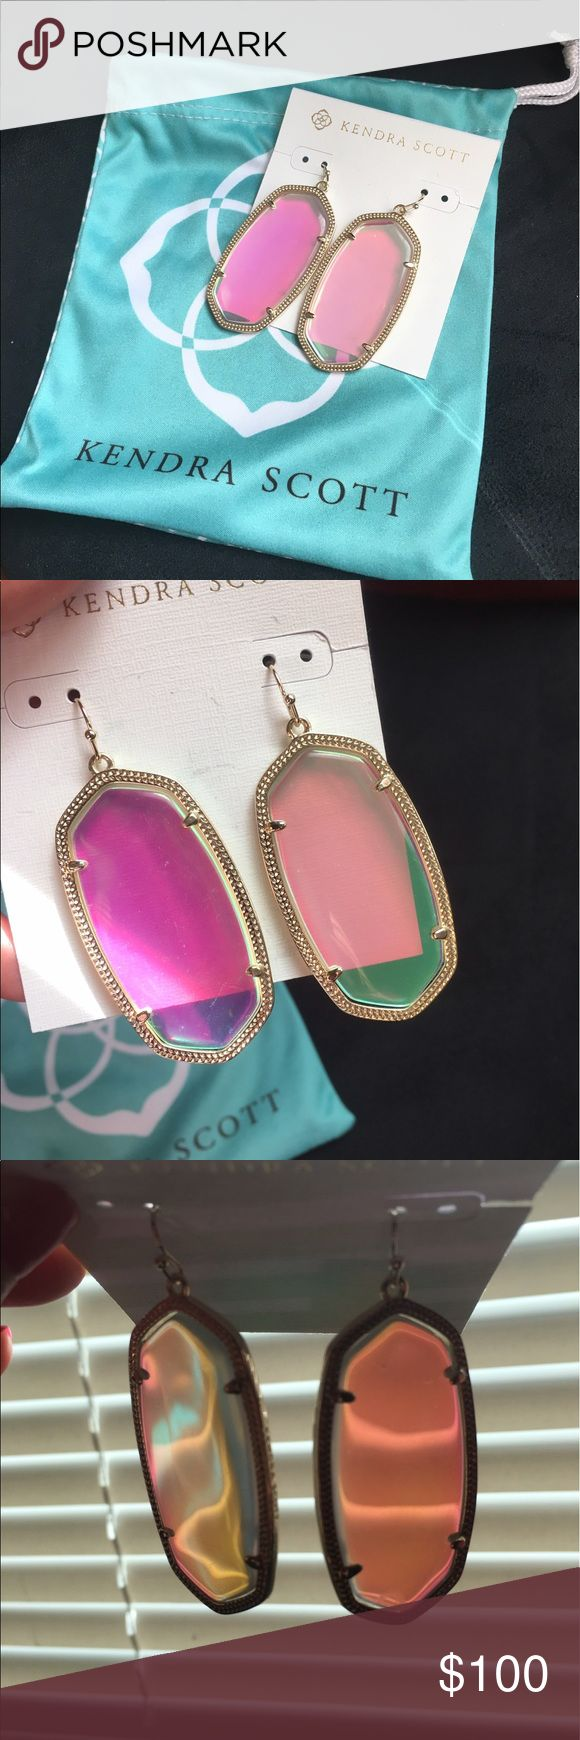 NWT Kendra Scott Danielle Earrings Iridescent Brand new and comes with pouch. Kendra Scott Jewelry Earrings